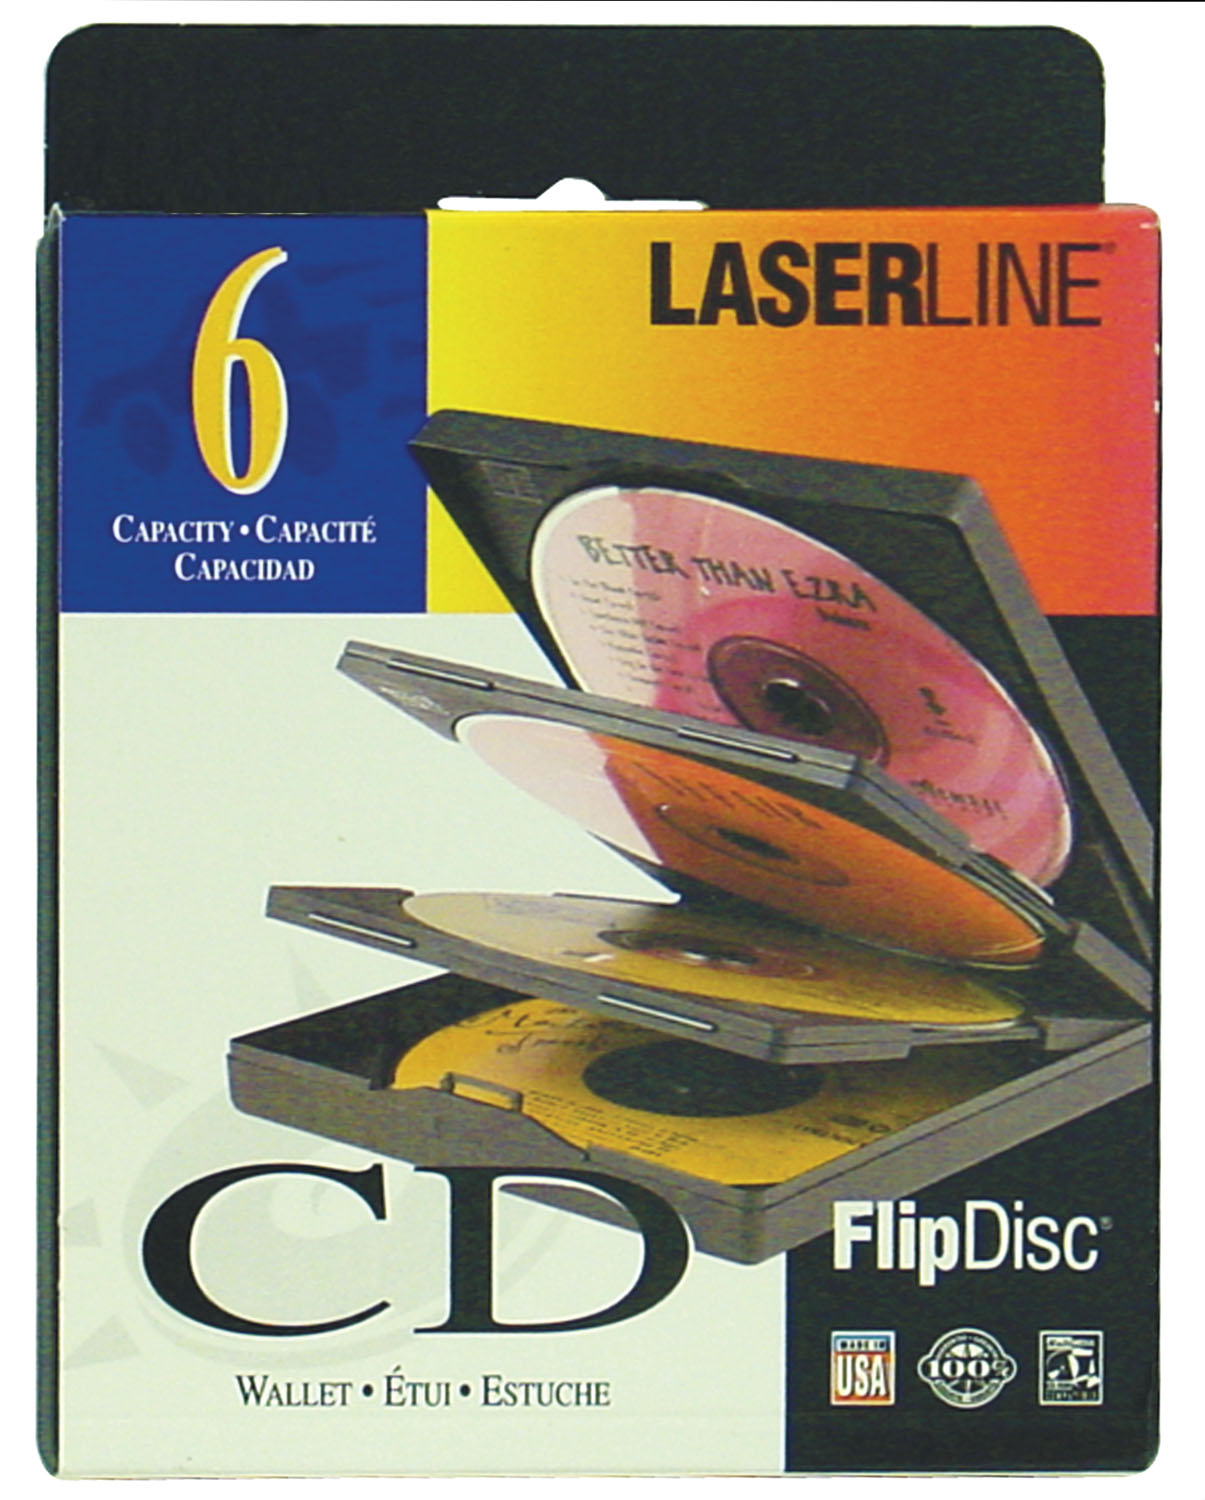 LASERLINE - 6 CAPACITY CD FLIP DISC CASE MADE WITH HIGH IMPACT PLASTIC PROTECTS MUSIC FROM DAMAGE & SUN